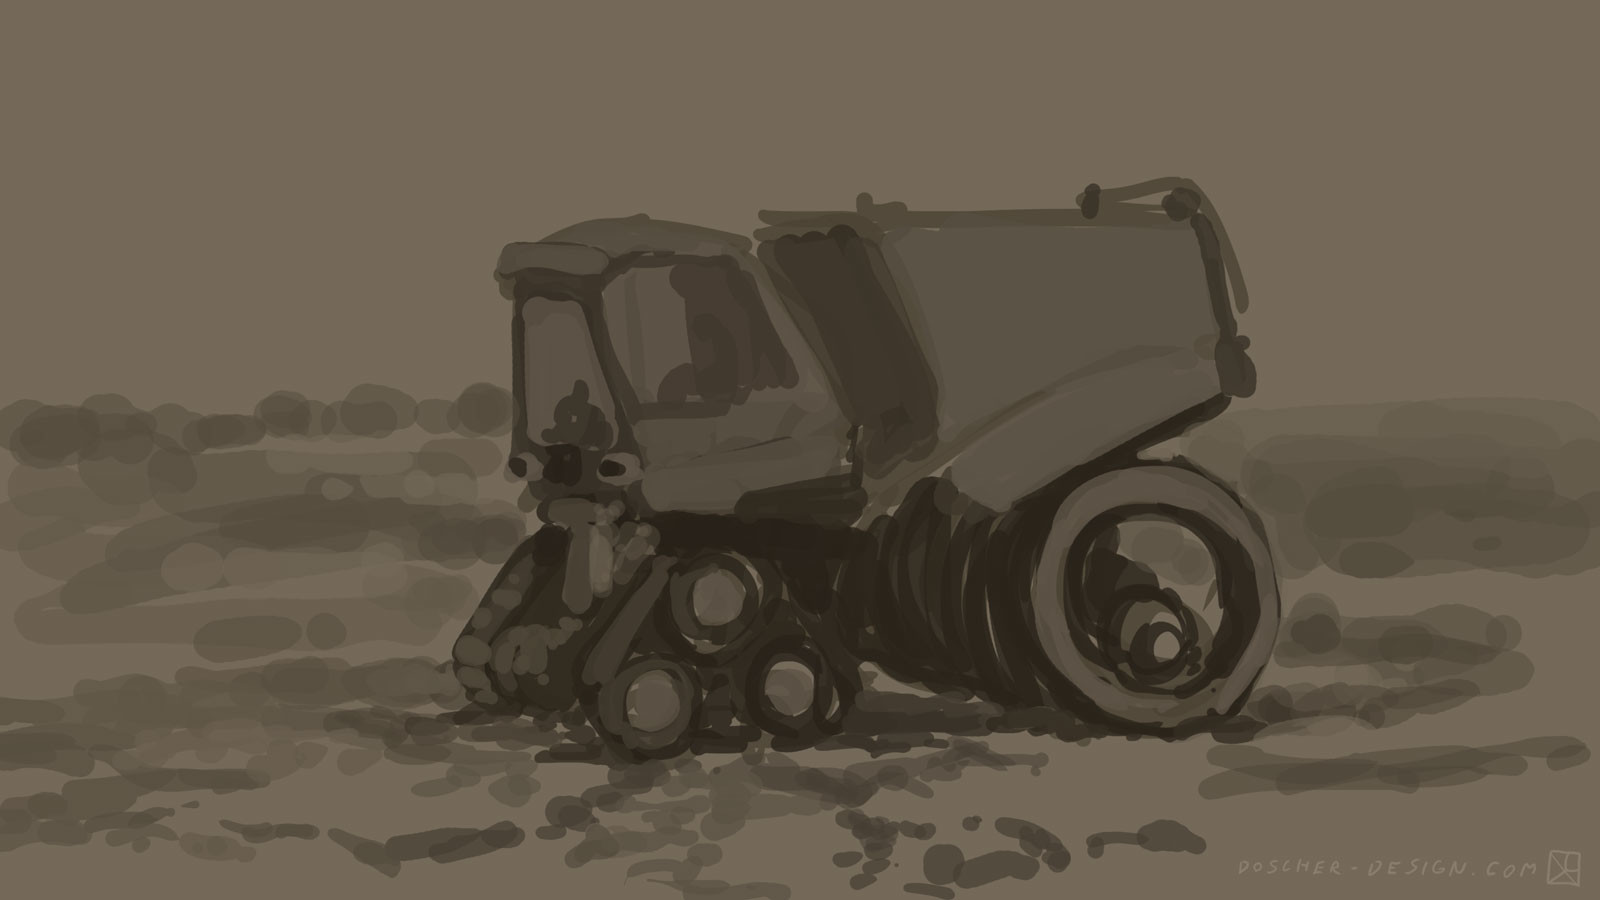 Initial sketch/underpainting. Thinking about shapes. Wanted it to be buglike but not cartoony.